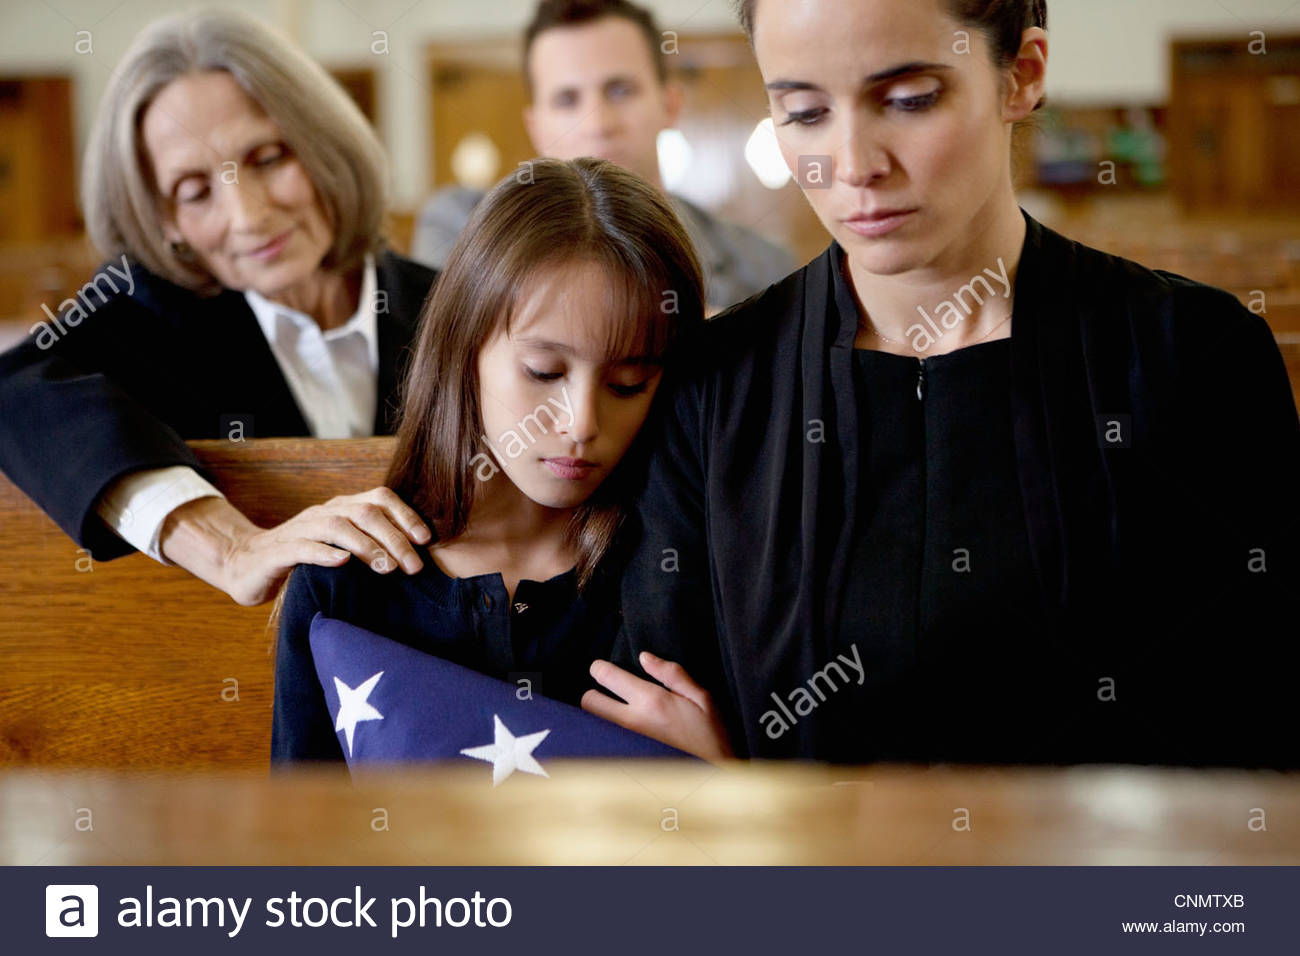 Mother and daughter at military funeral - Stock Image